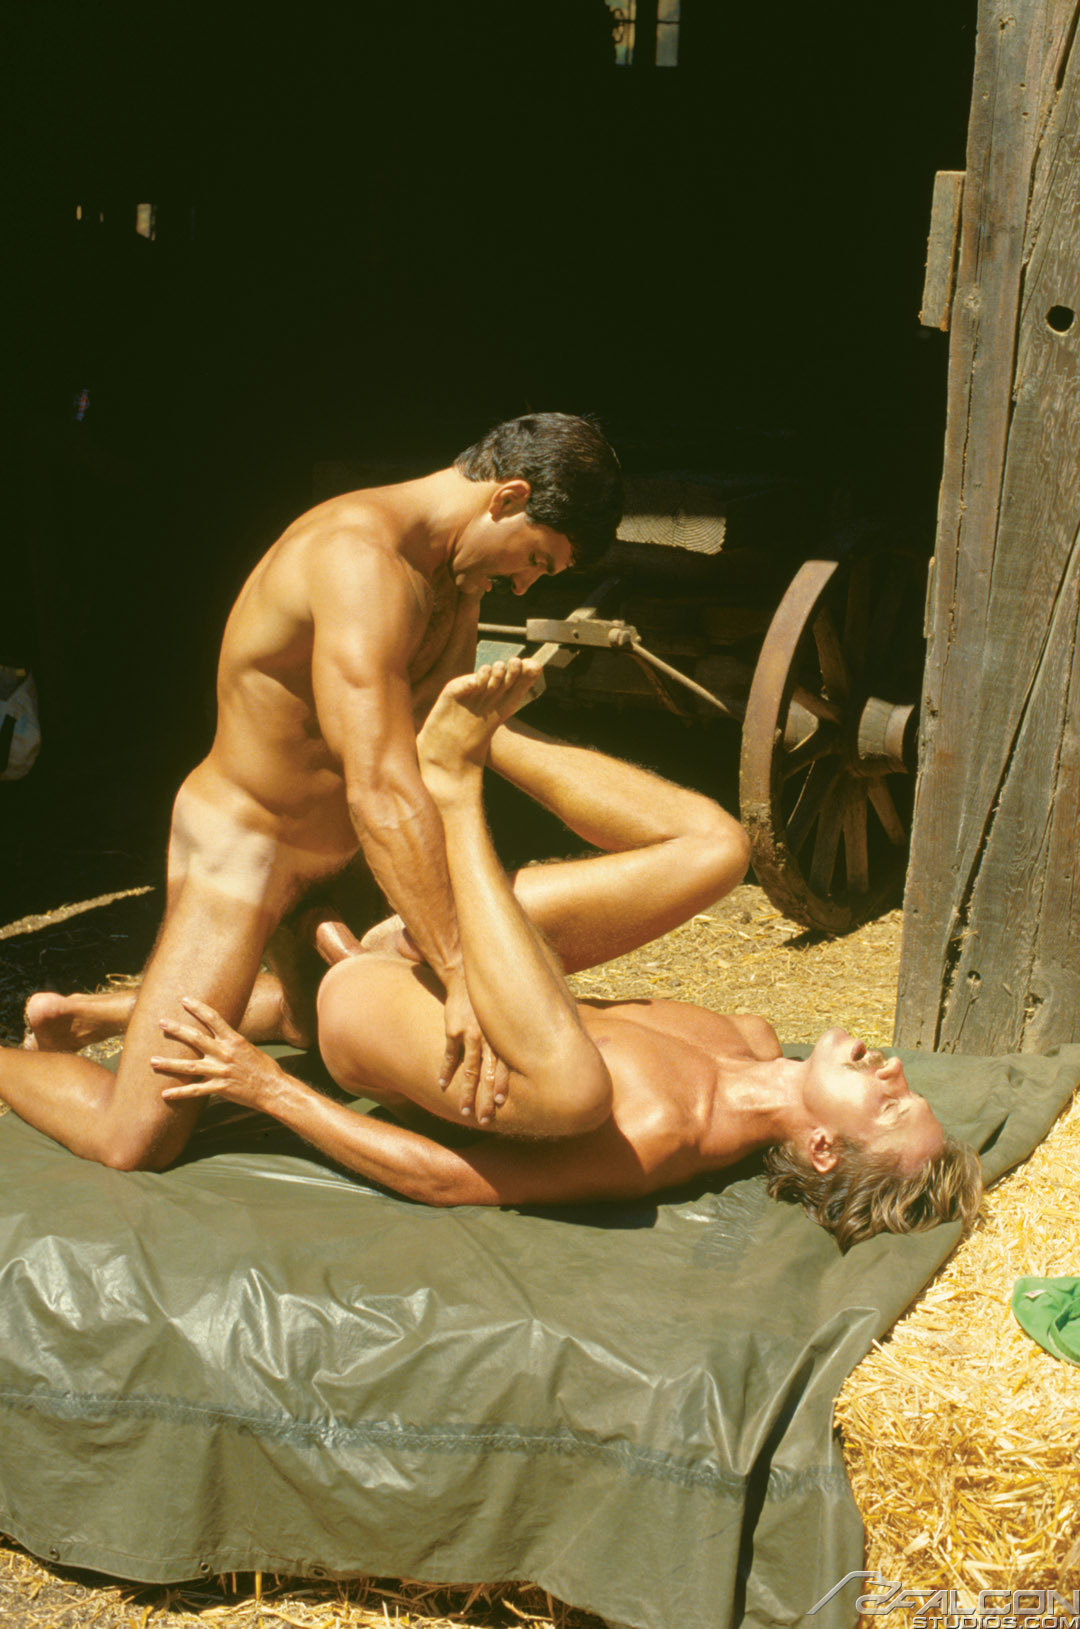 Rod Mitchell bareback fuck Judd Preston vintage gay hot daddy dude men porn Ramcharger